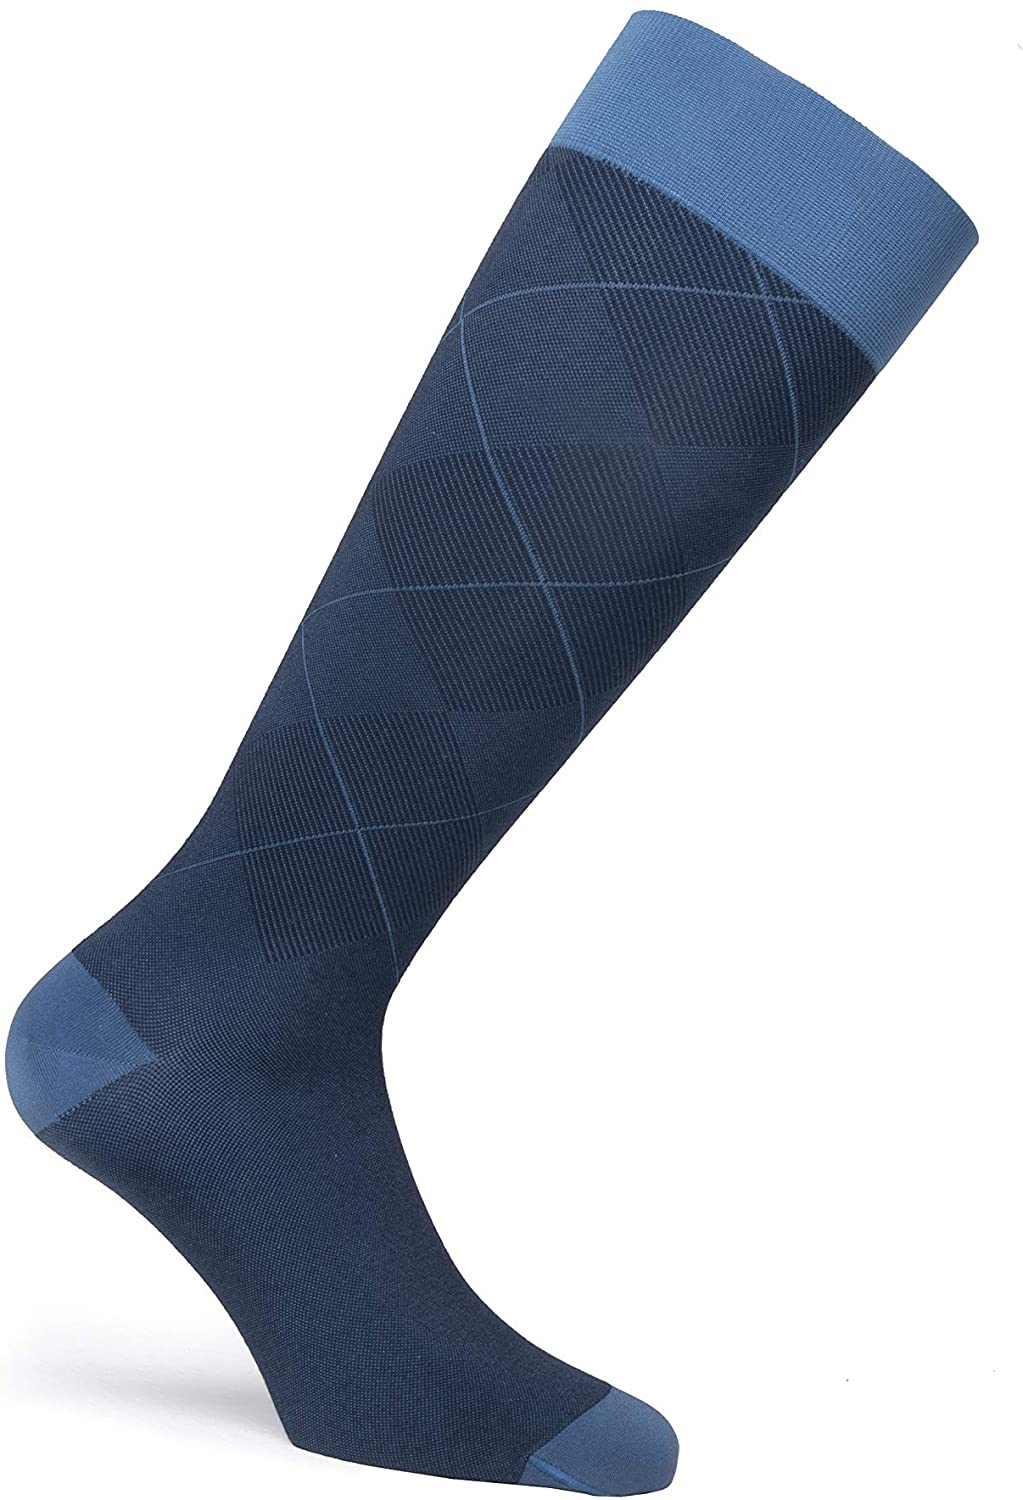 JOBST Casual Pattern Compression Knee High Socks, Closed Toe, 30-40 mmHg Extra Firm Support for Swollen Legs, Ocean Blue, Size: Small, Regular Length